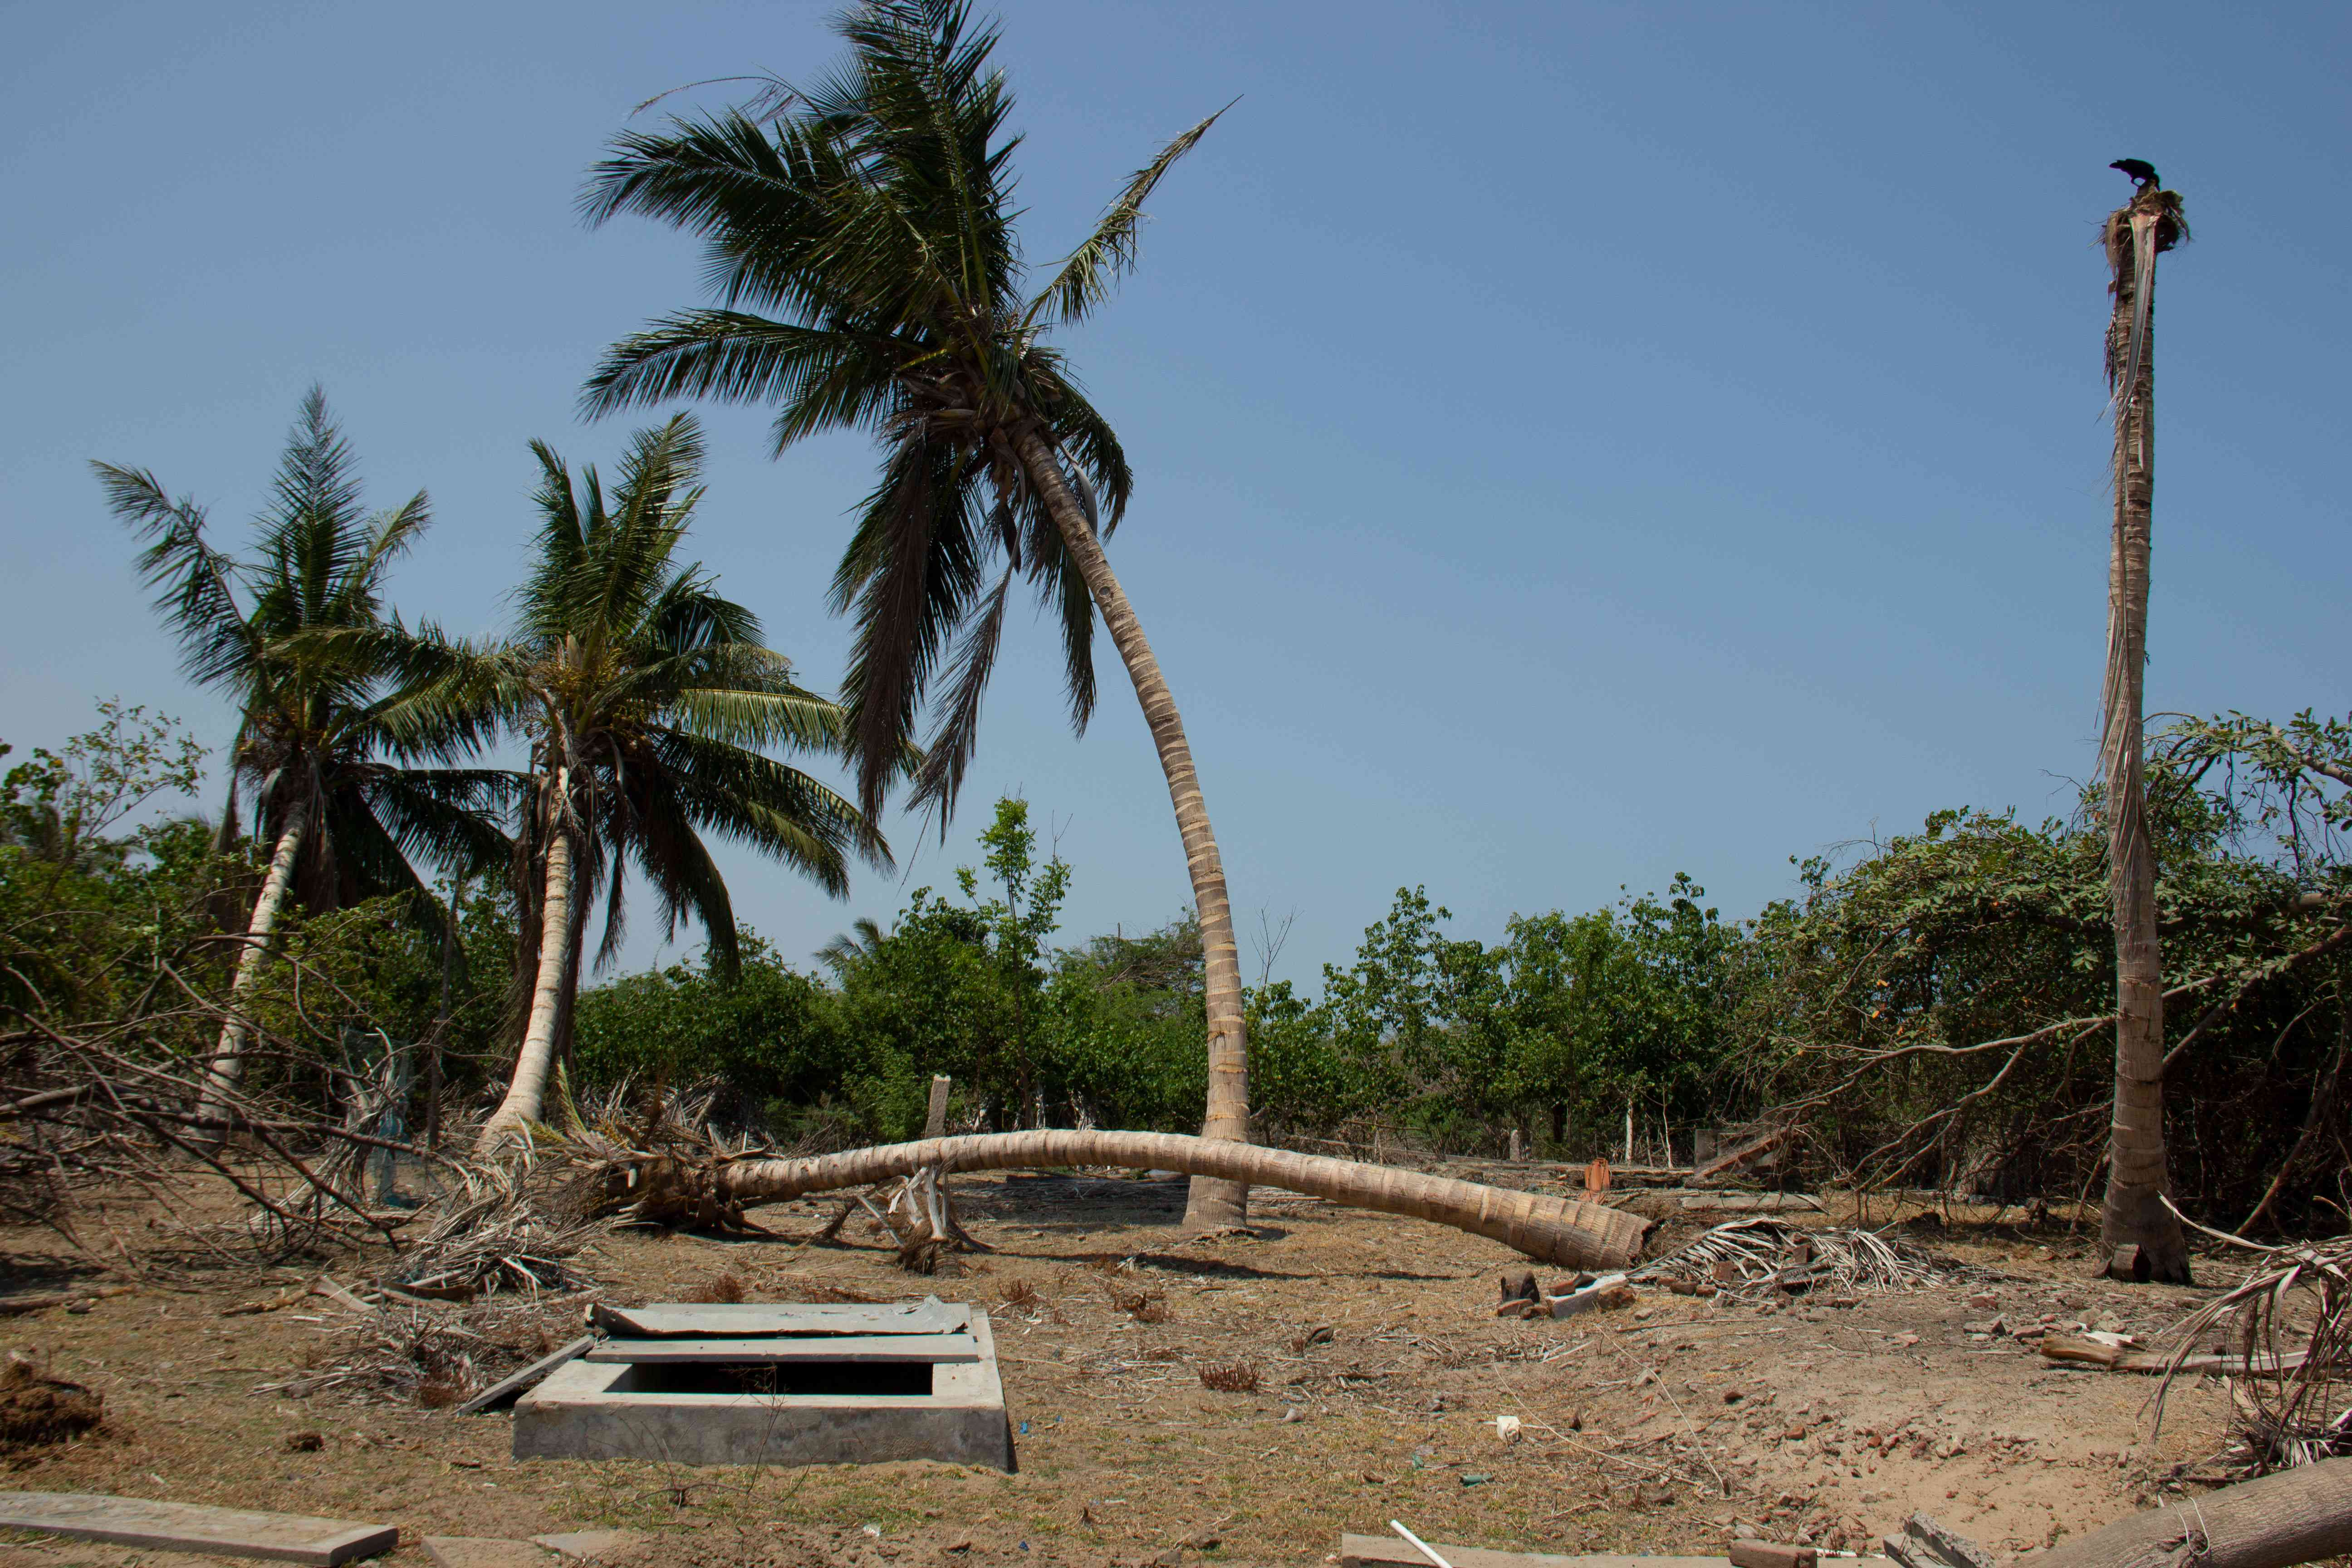 A coconut tree damaged during cyclone Gaja remains to be cleared in Arucottuthurai village in Nagapattinam in Tamil Nadu. Photo Credit: M Palanikumar|Pepcollective